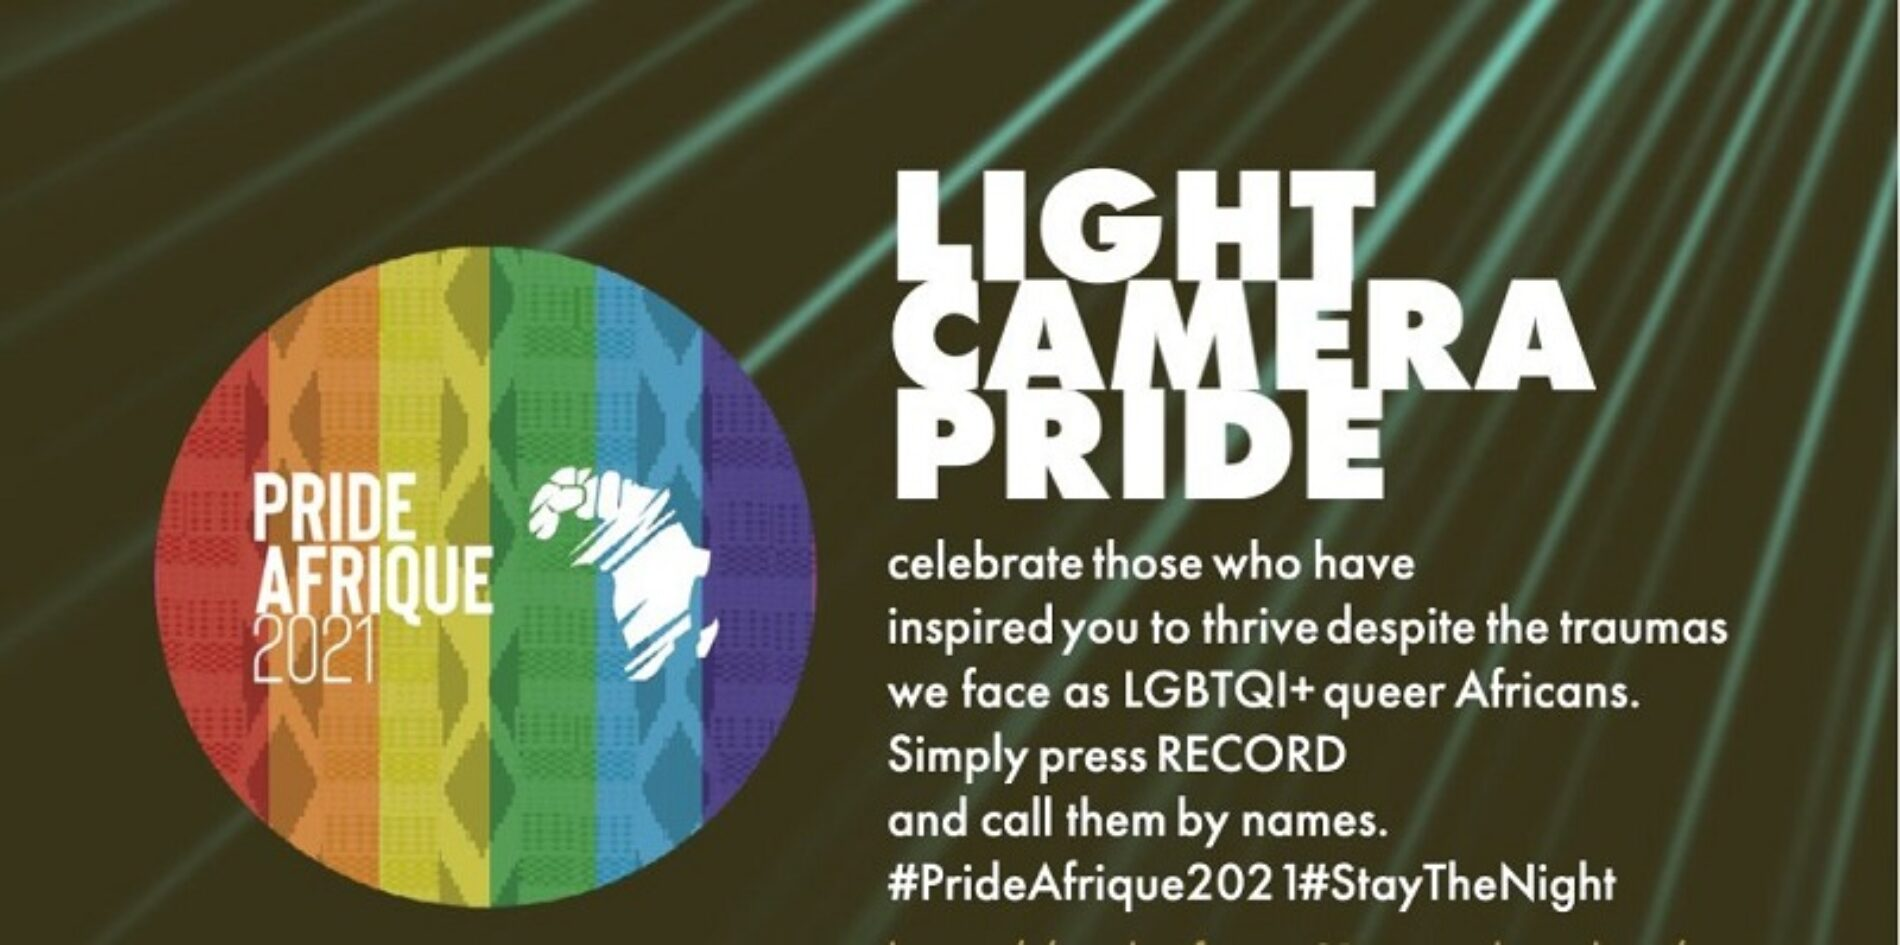 Pride Afrique 2021 Is Here, And We Want To Know About Who Inspires You